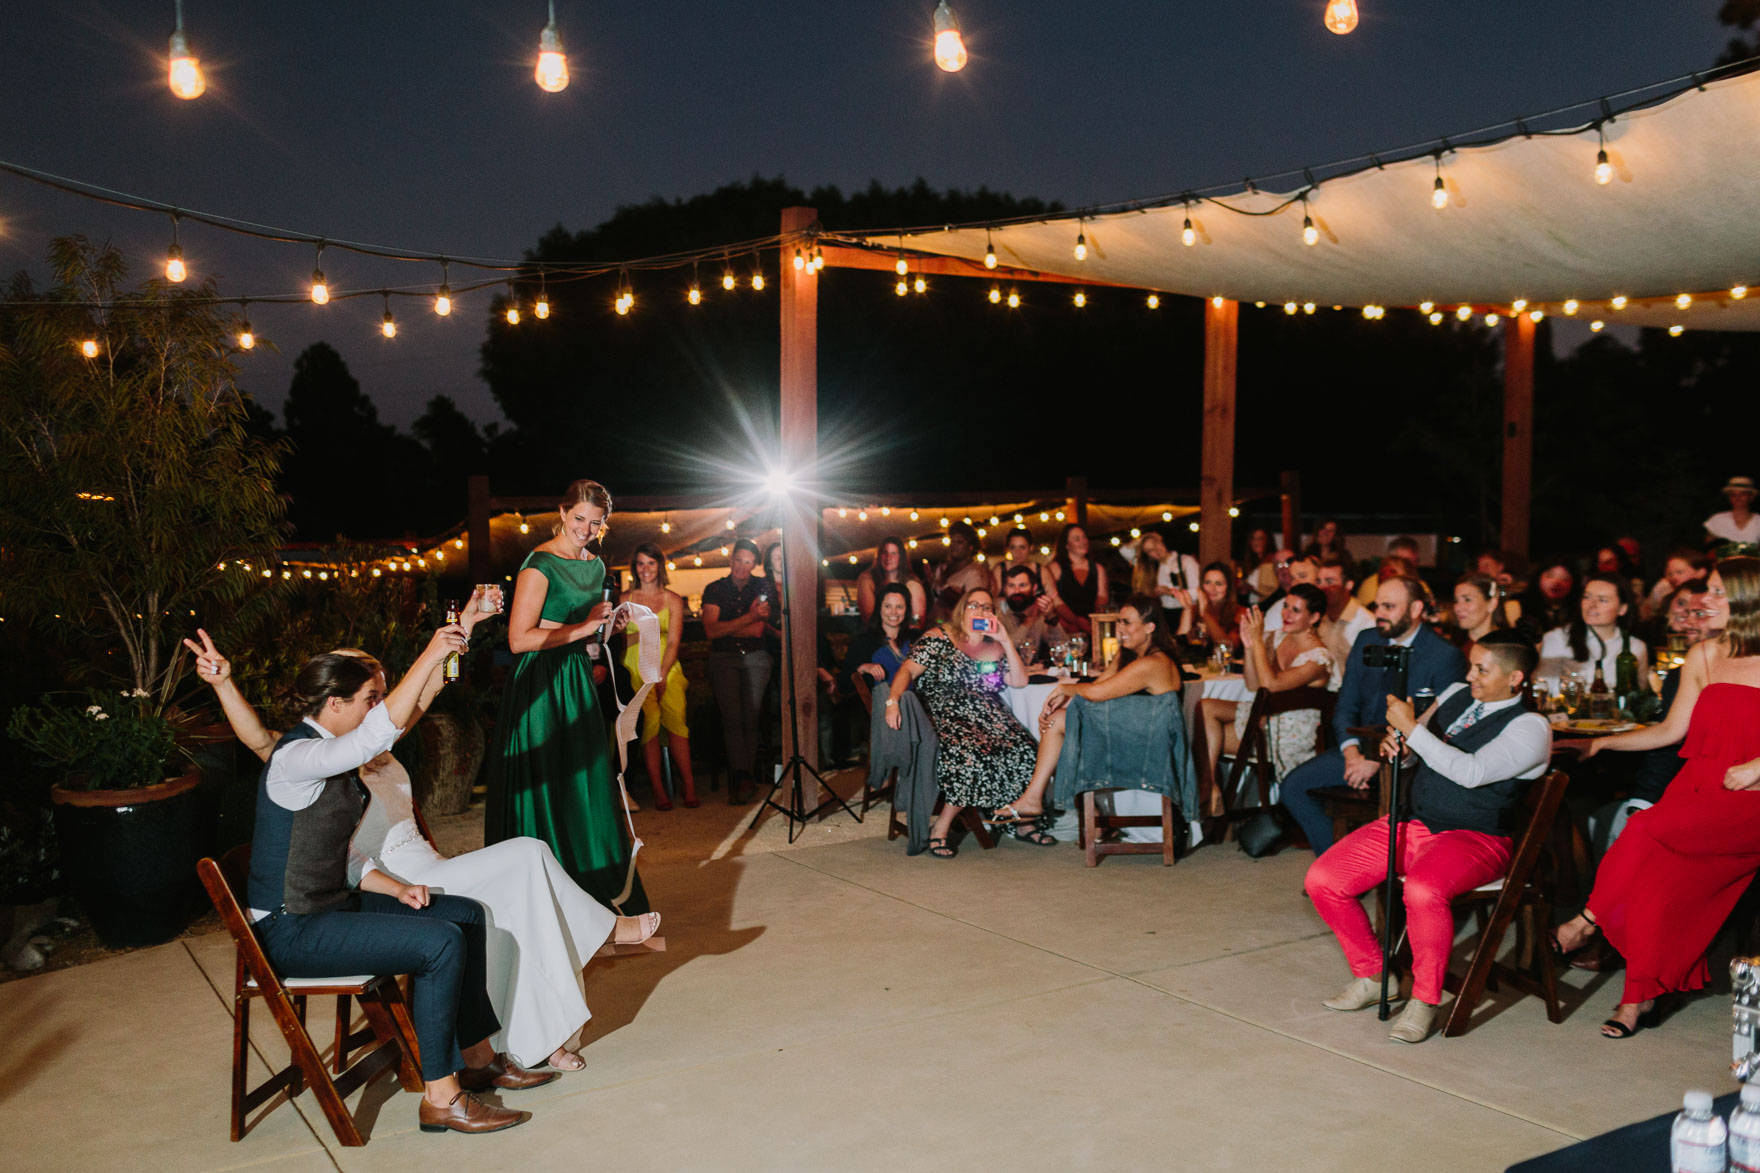 A Barrels & Branches Bash – Photo by Let's Frolic Together